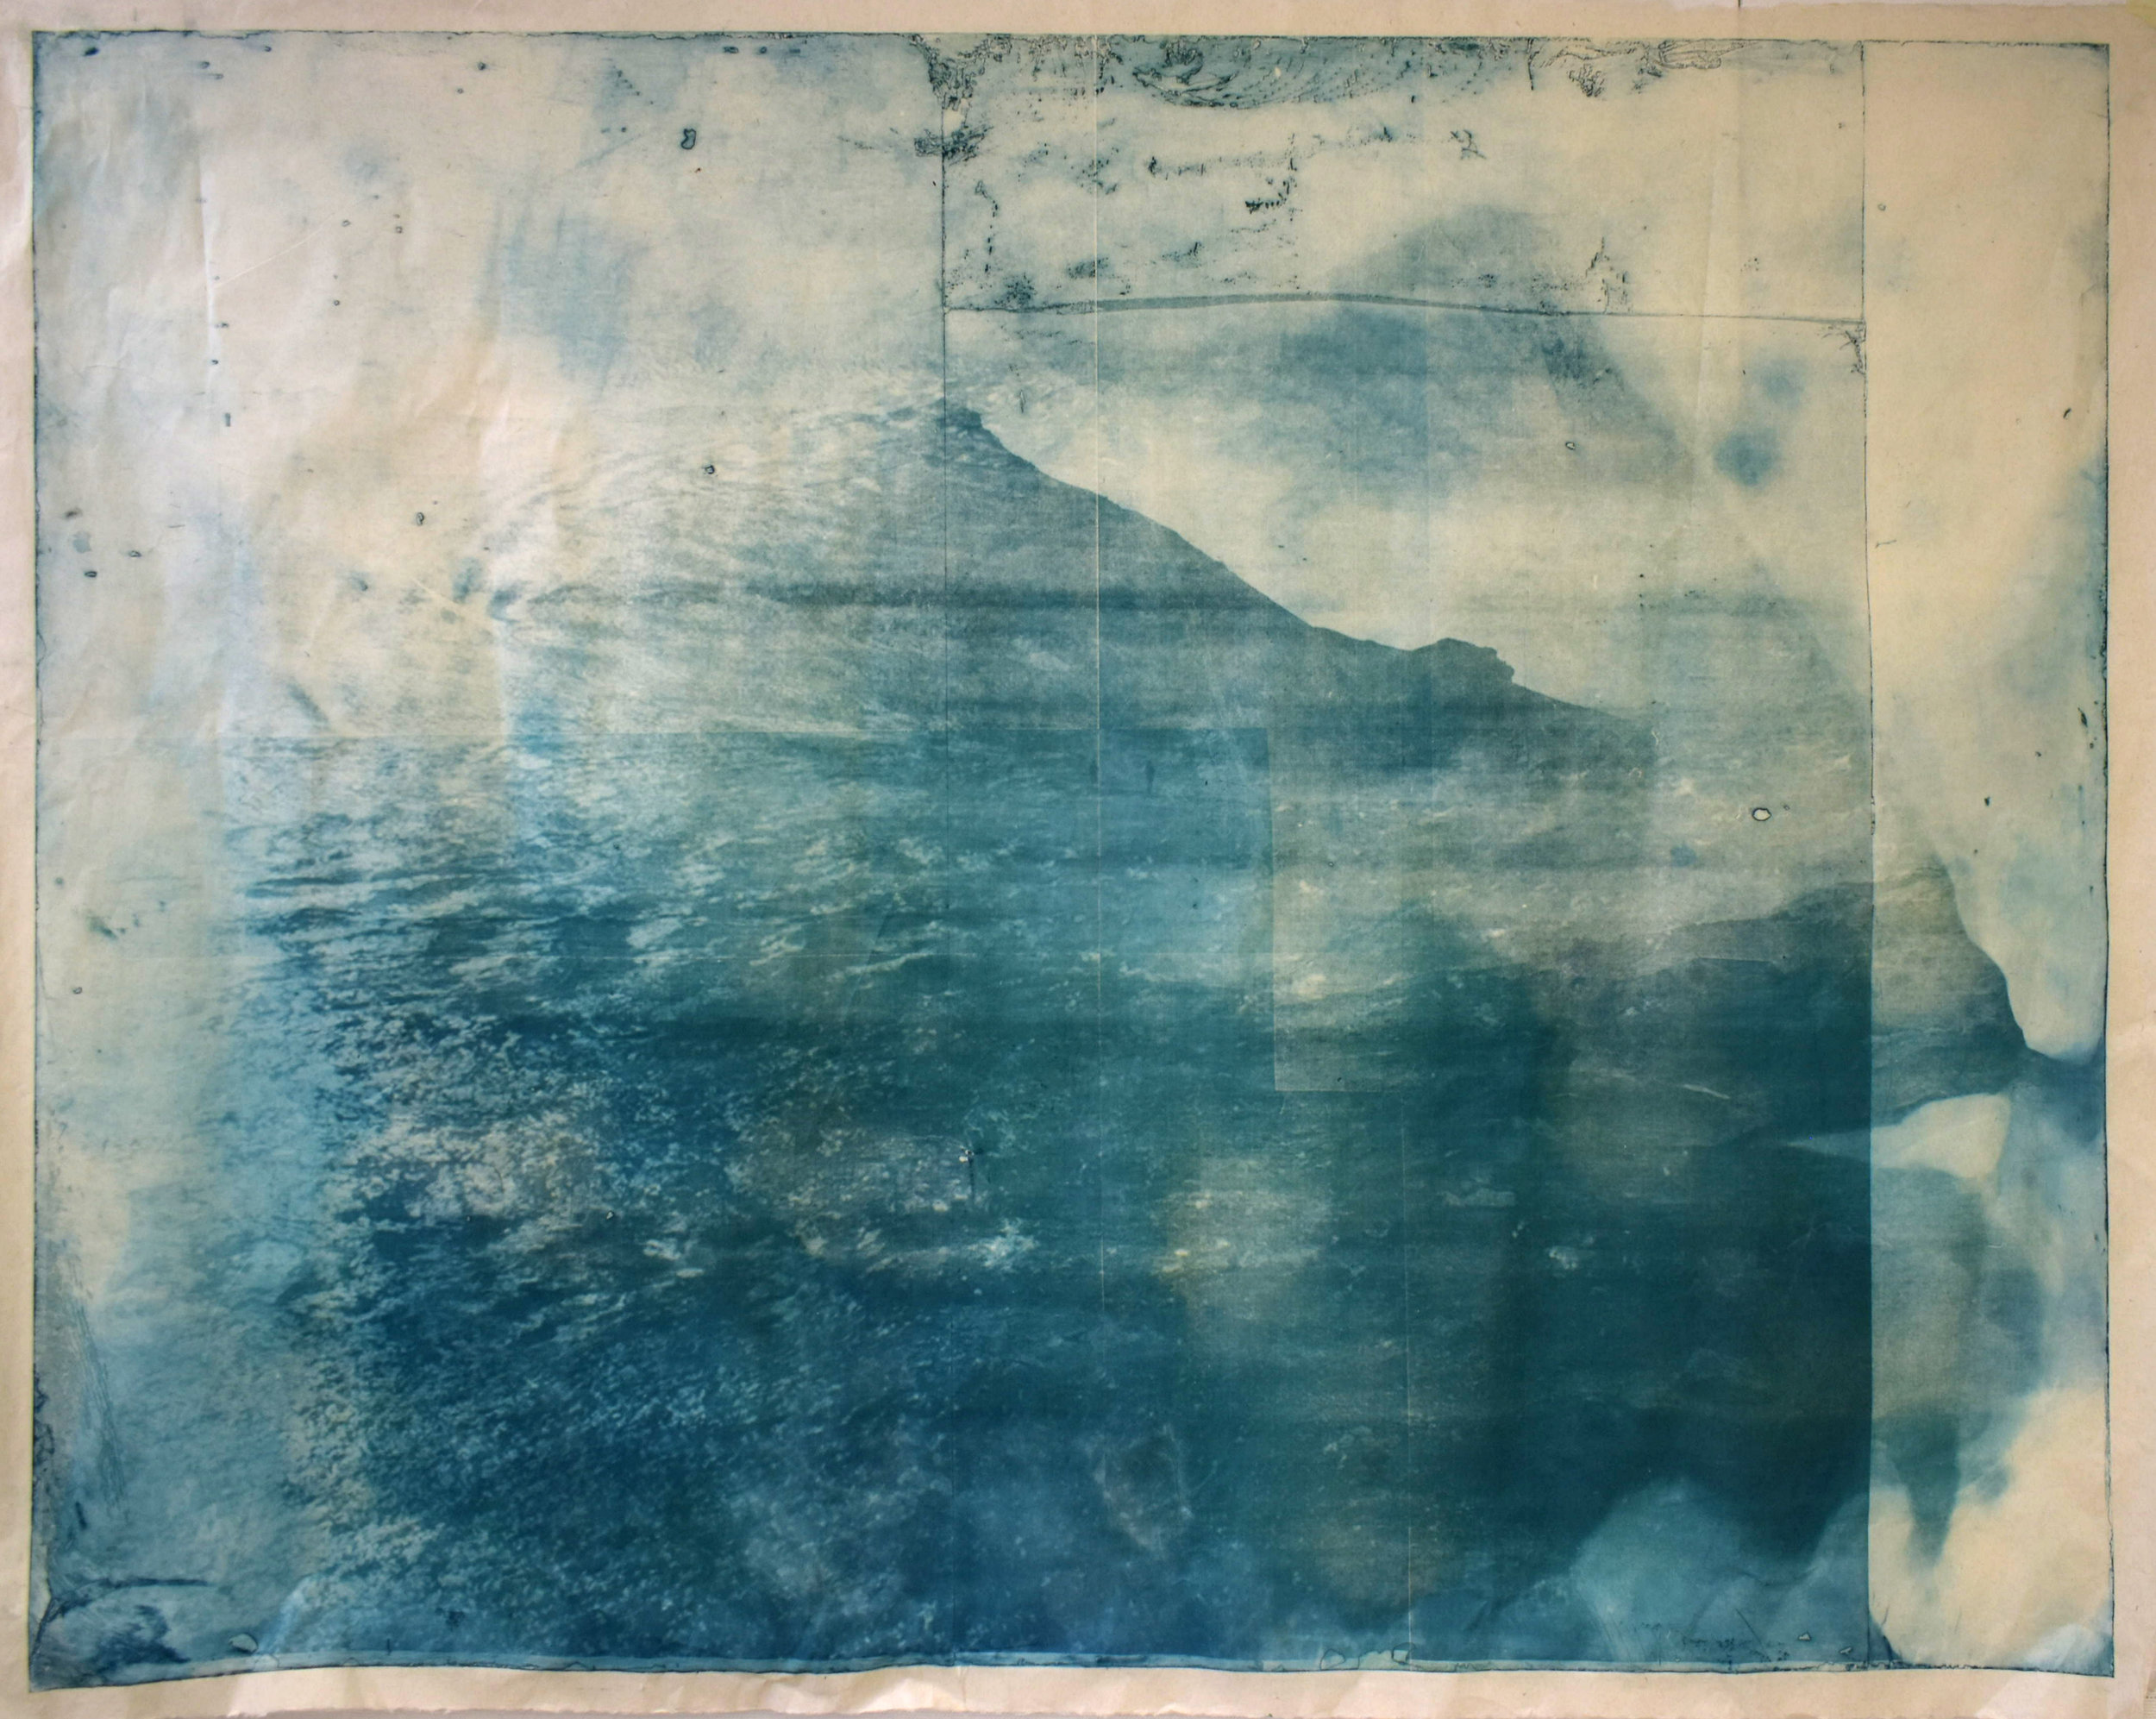 Over and Under (Whirlpool),  No. 3, 2019, series of 9 photopolymer prints (from Prussian blue to orange oxide) printed on semi-transparent Thai paper. 137 x 109cm. Superposition of 2 photographs taken by the artist: fumerole pits in Námafjall, Iceland and a whirlpool off the Cap Fréhel, France.